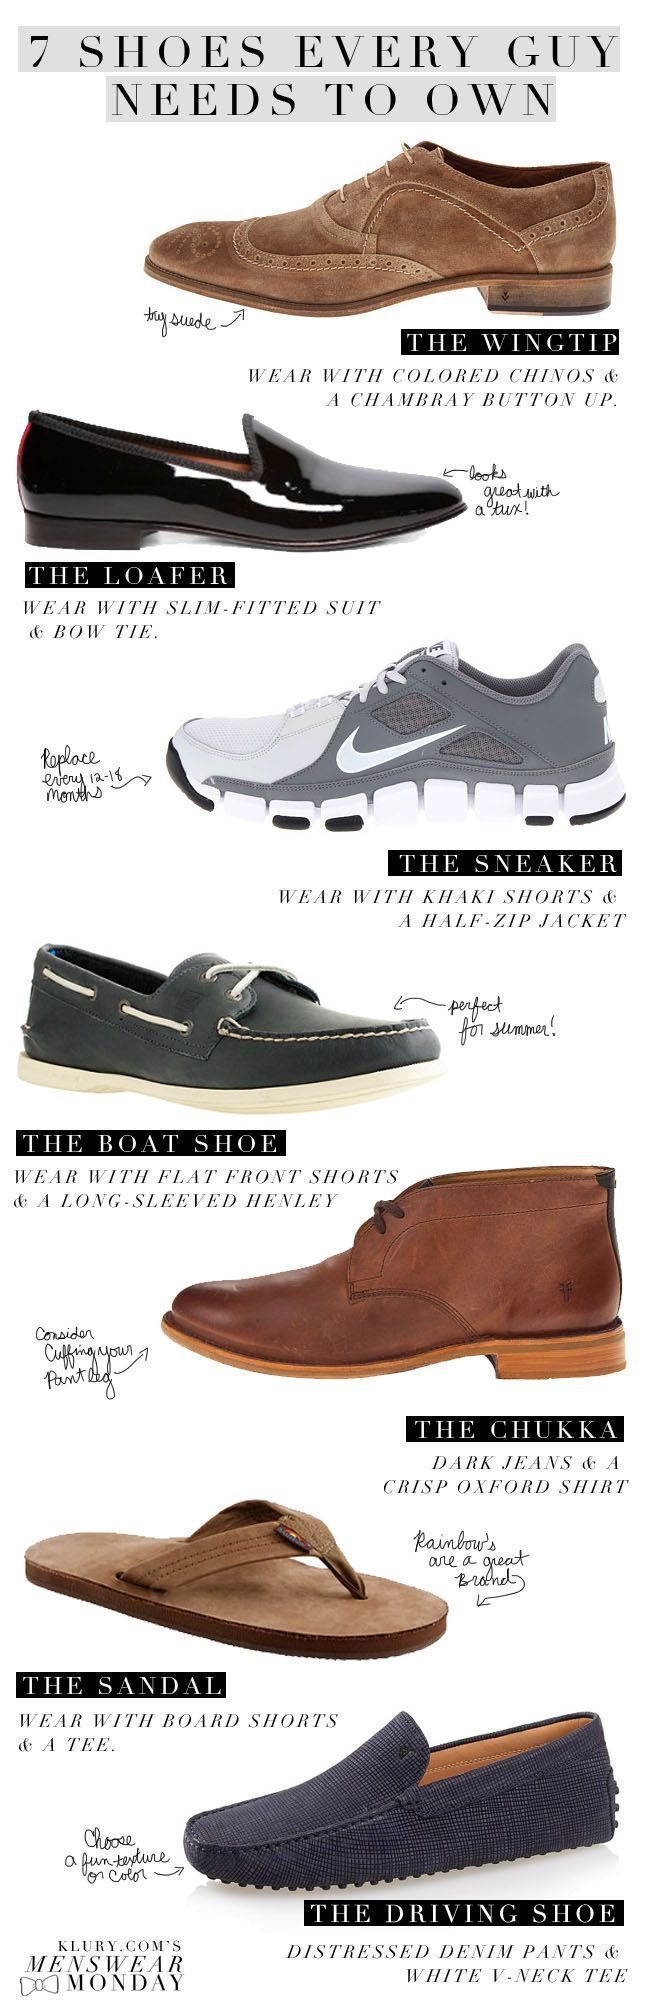 7 Shoes Every Guy Needs To Own #mensfashion #infographic